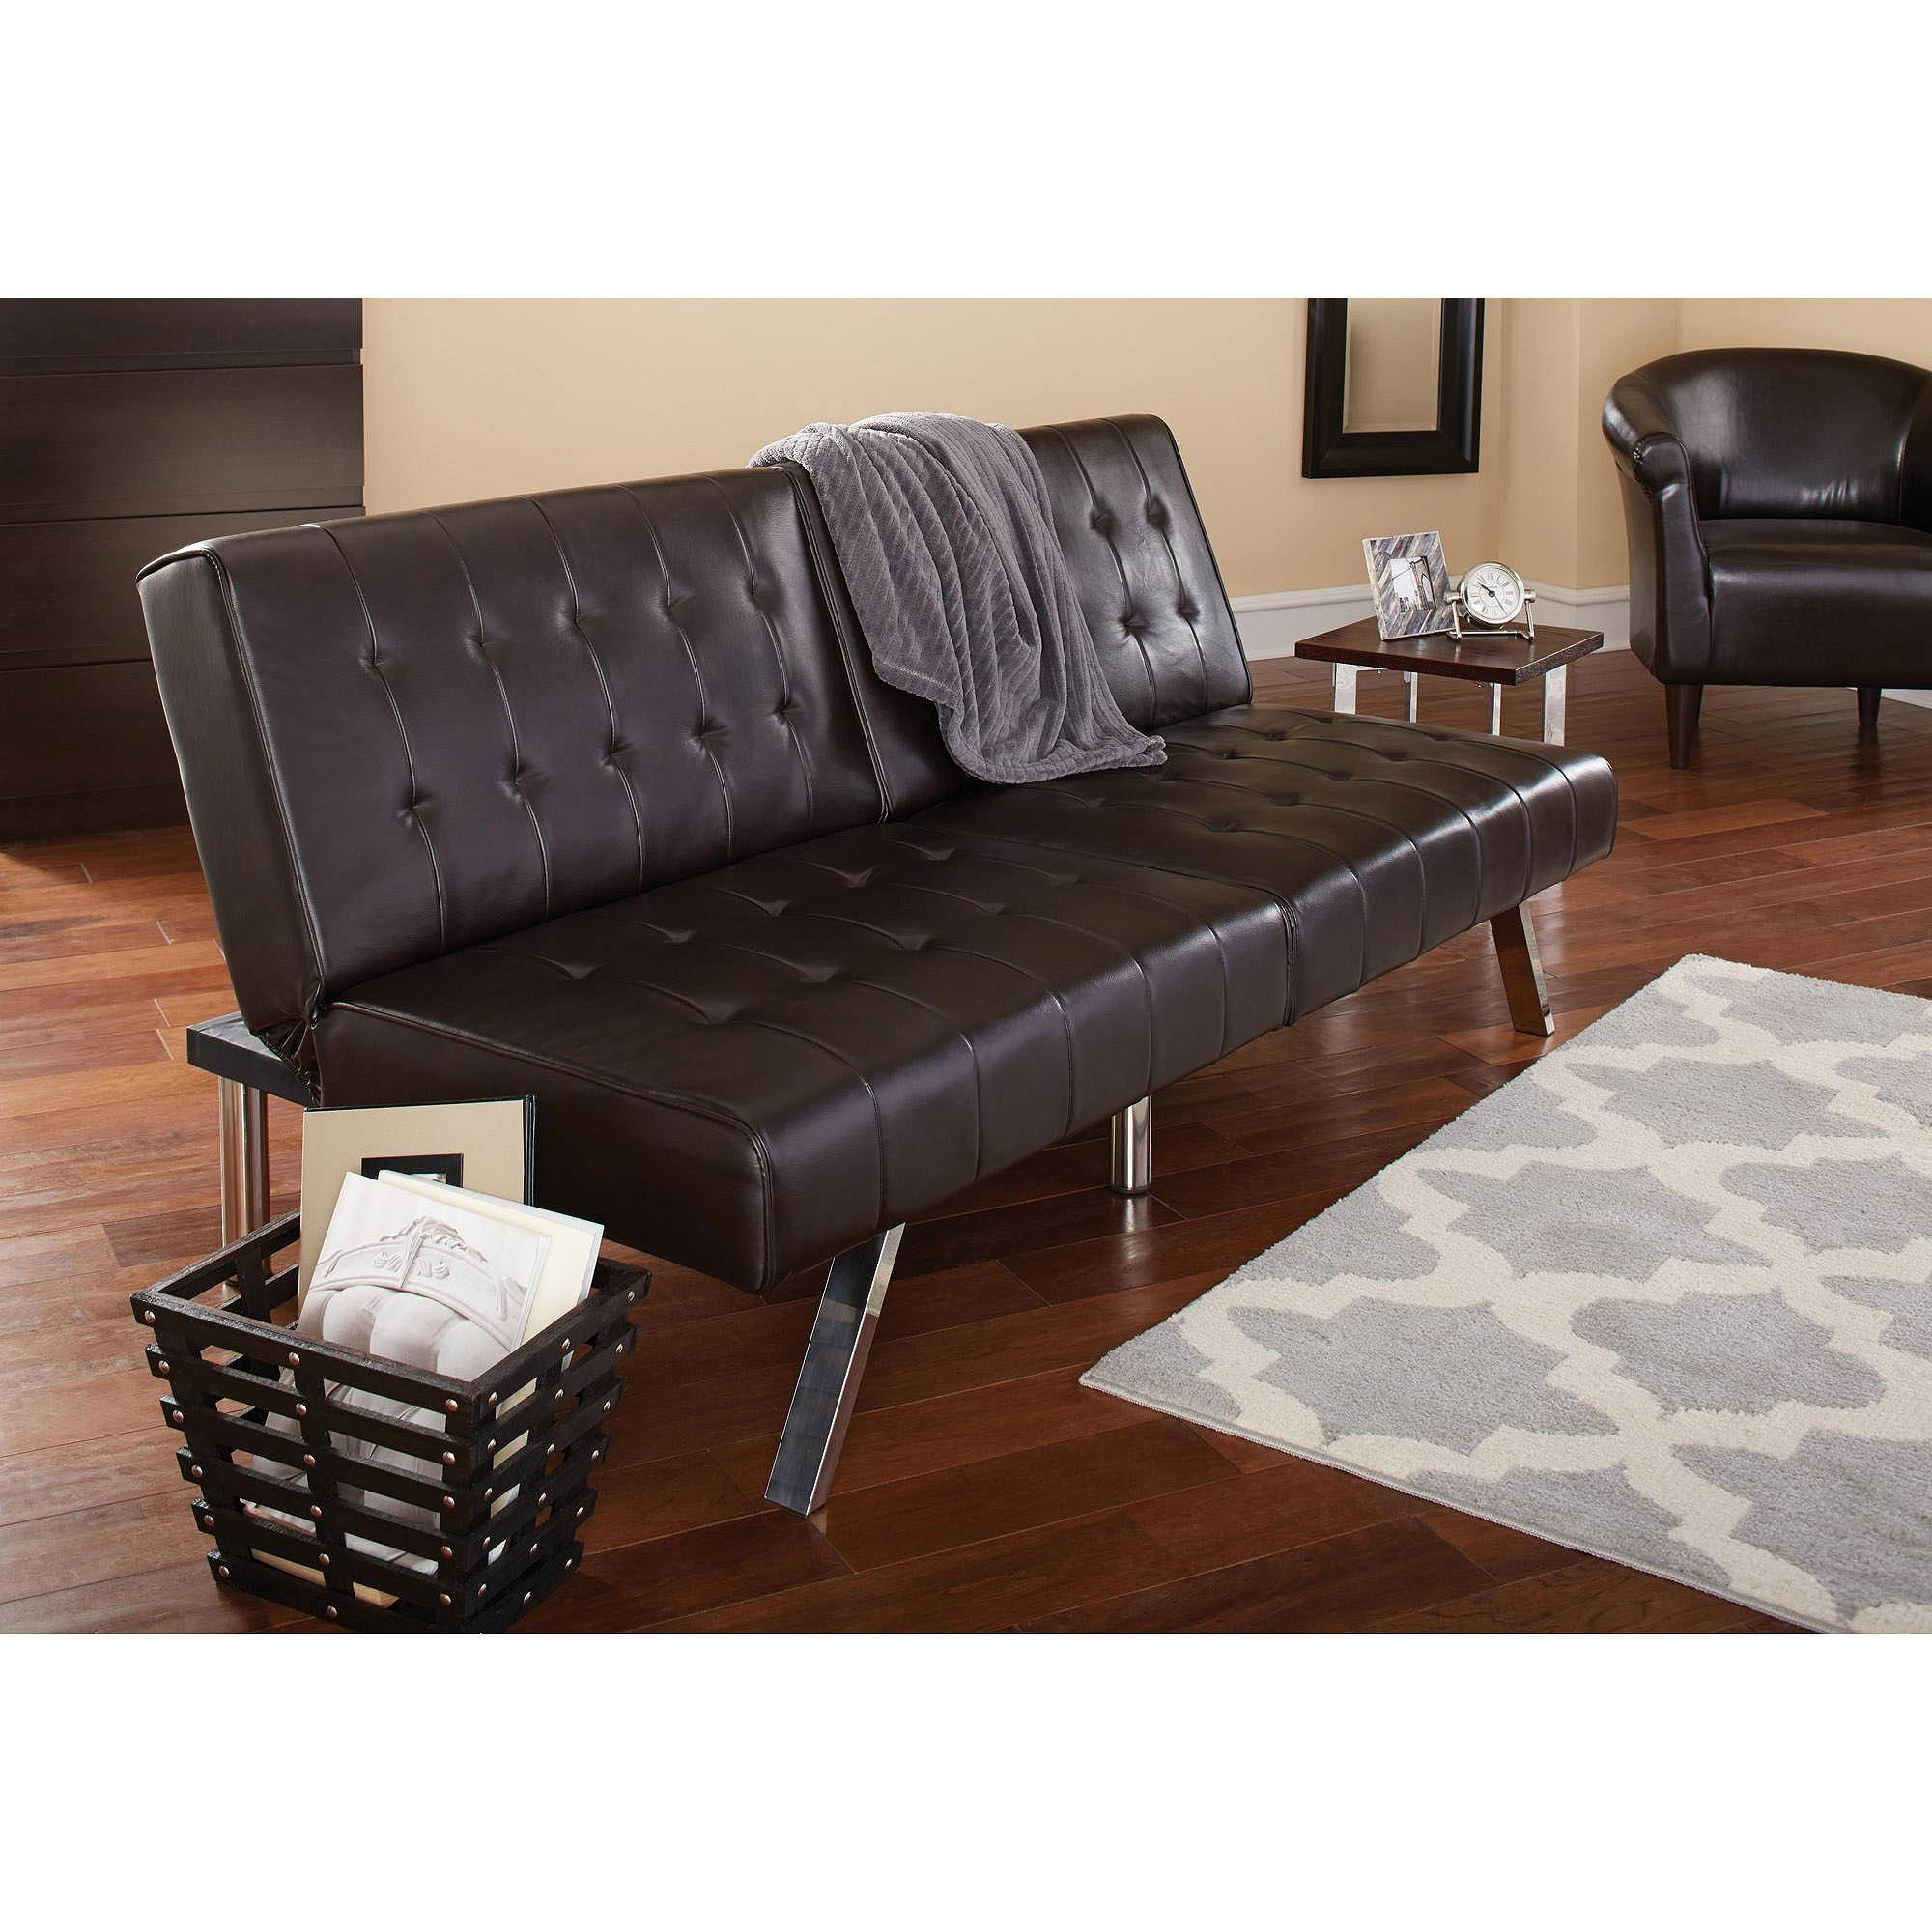 Sofa: Modern Look With A Low Profile Style With Walmart Sofa Bed intended for Big Lots Sofa Bed (Image 20 of 30)